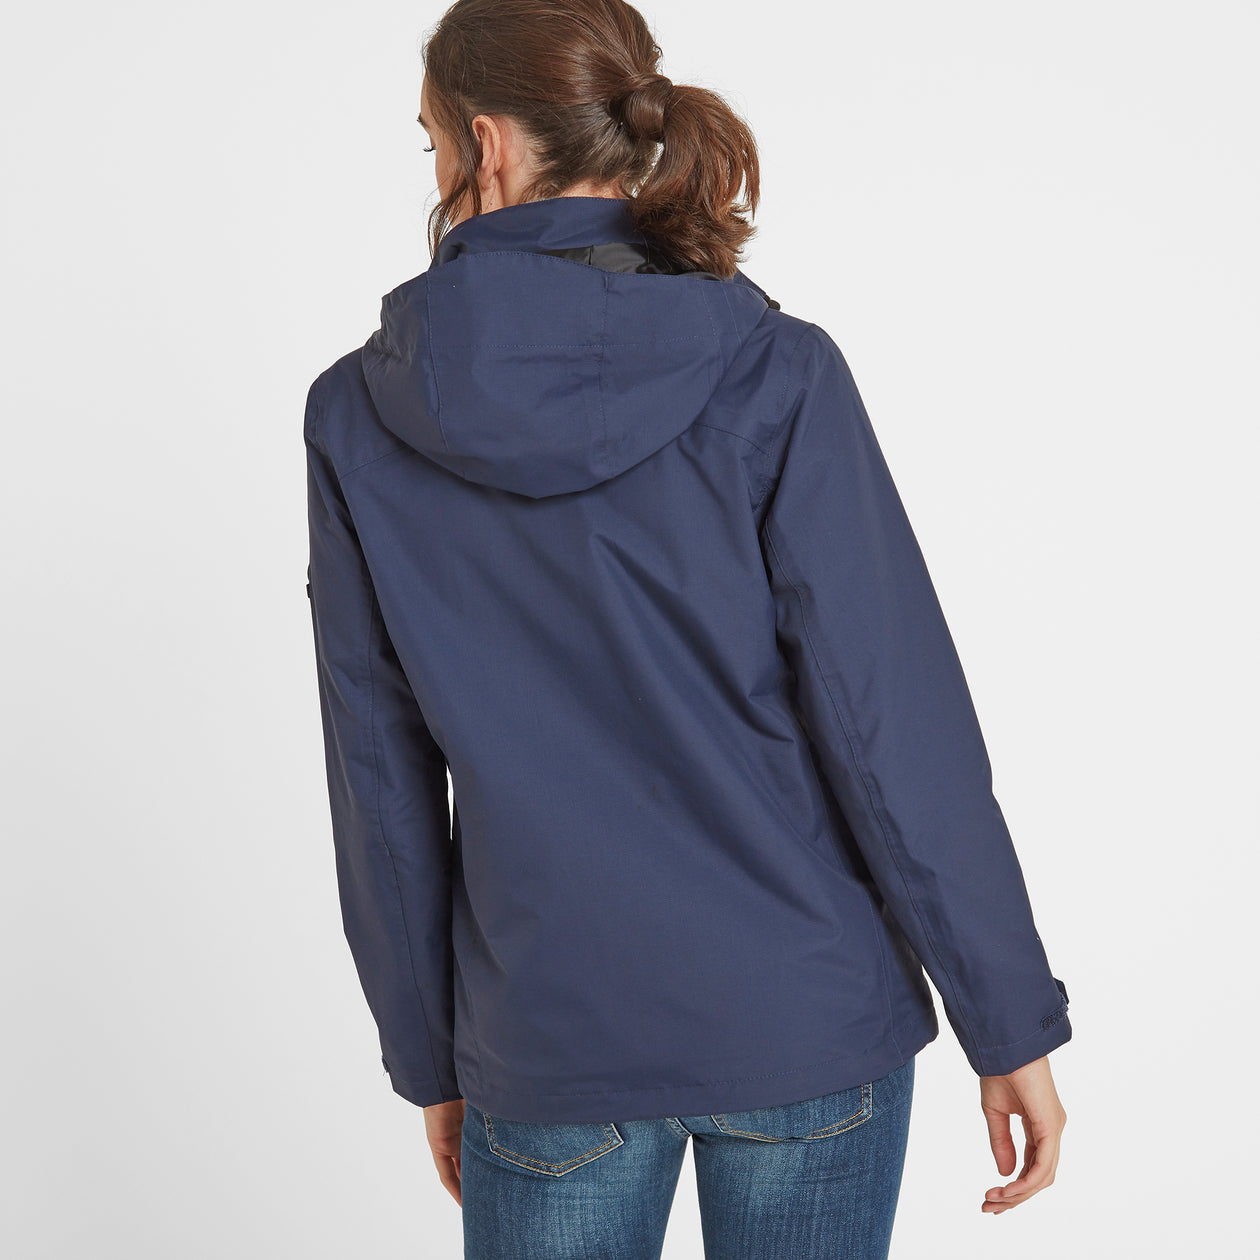 Mawson Womens Waterproof Jacket - Navy image 4